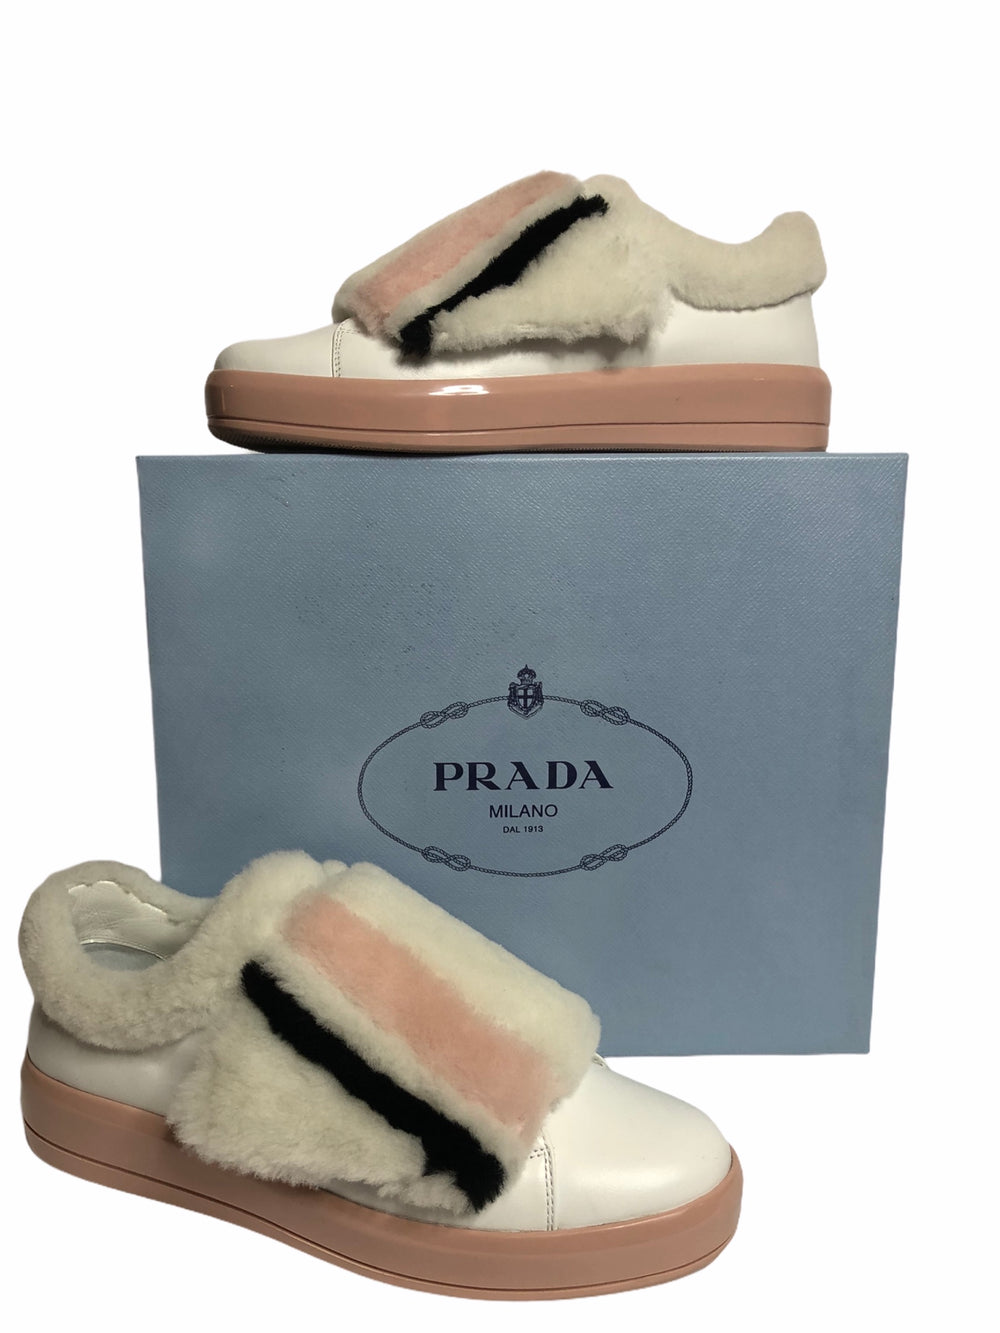 Prada Sneakers - EU 39 / UK 6- As Seen on Instagram